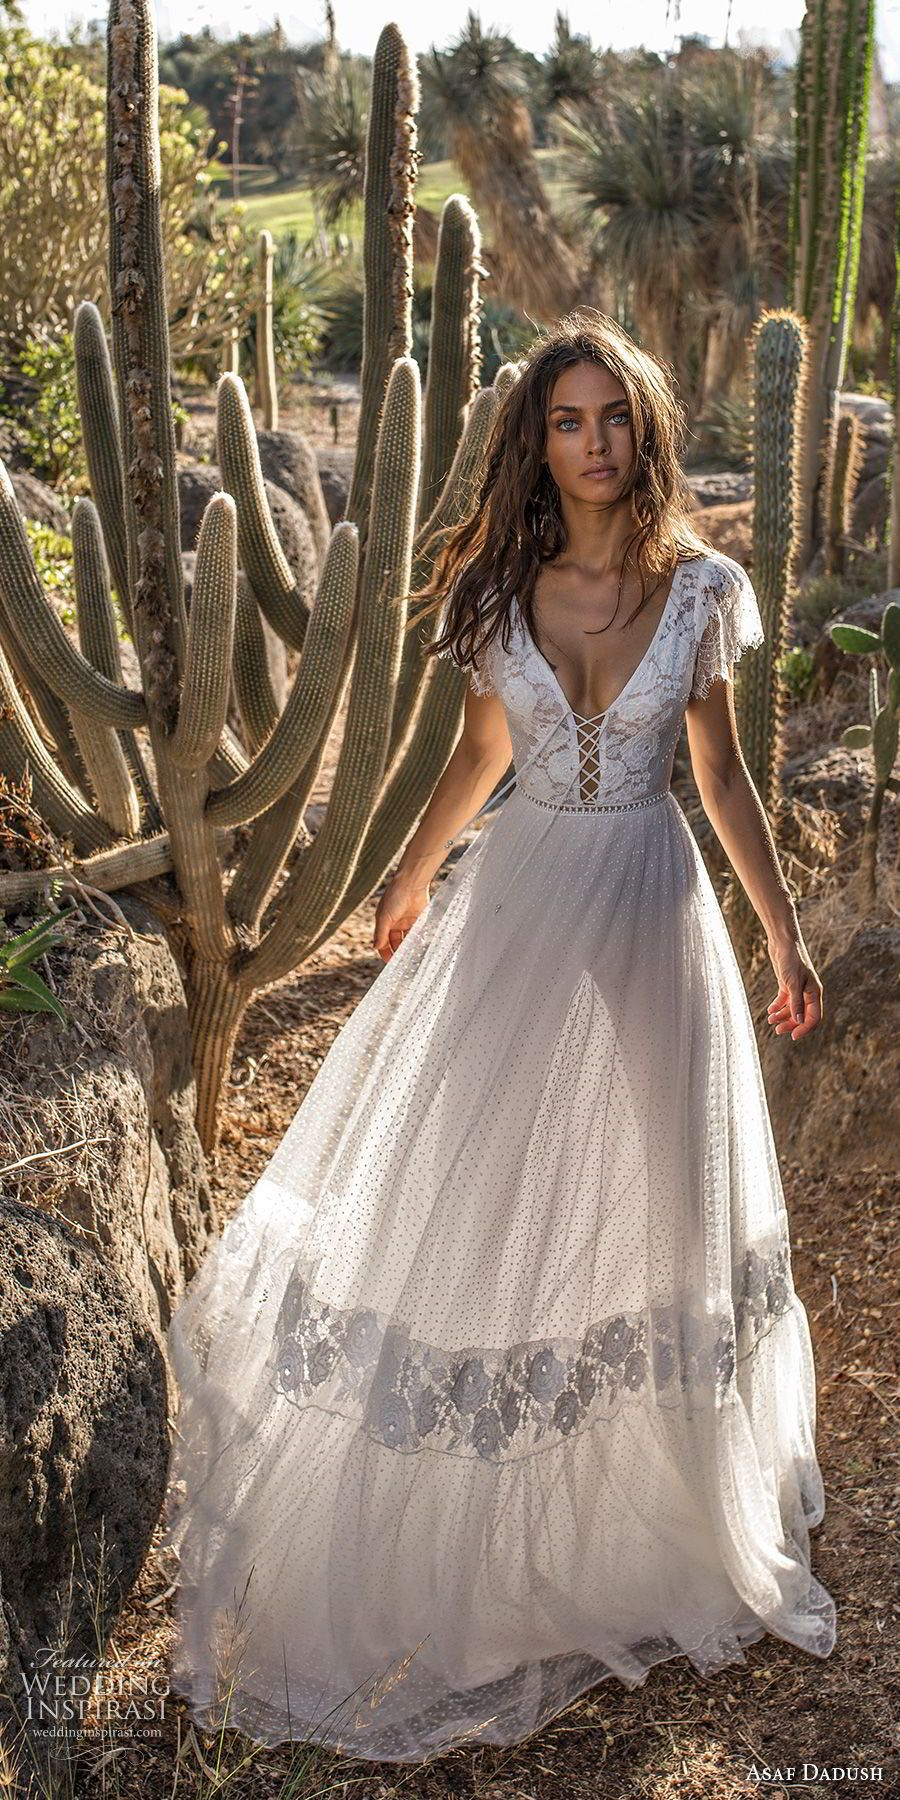 Asaf dadush wedding dresses matrimonio pinterest bodice